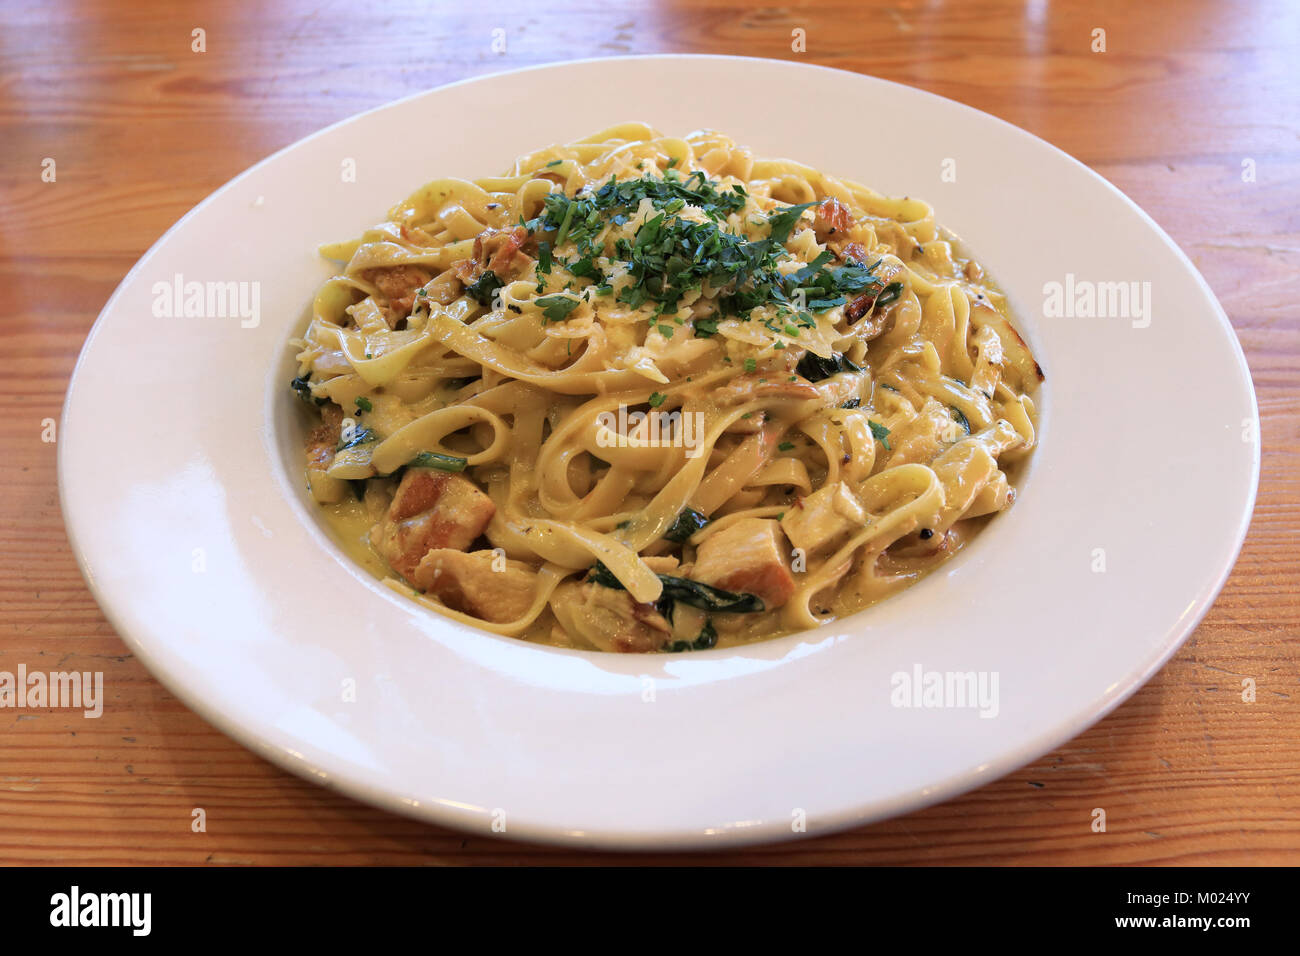 Chicken and Mushroom Fettuccine with creamy sauce on wooden table - Stock Image